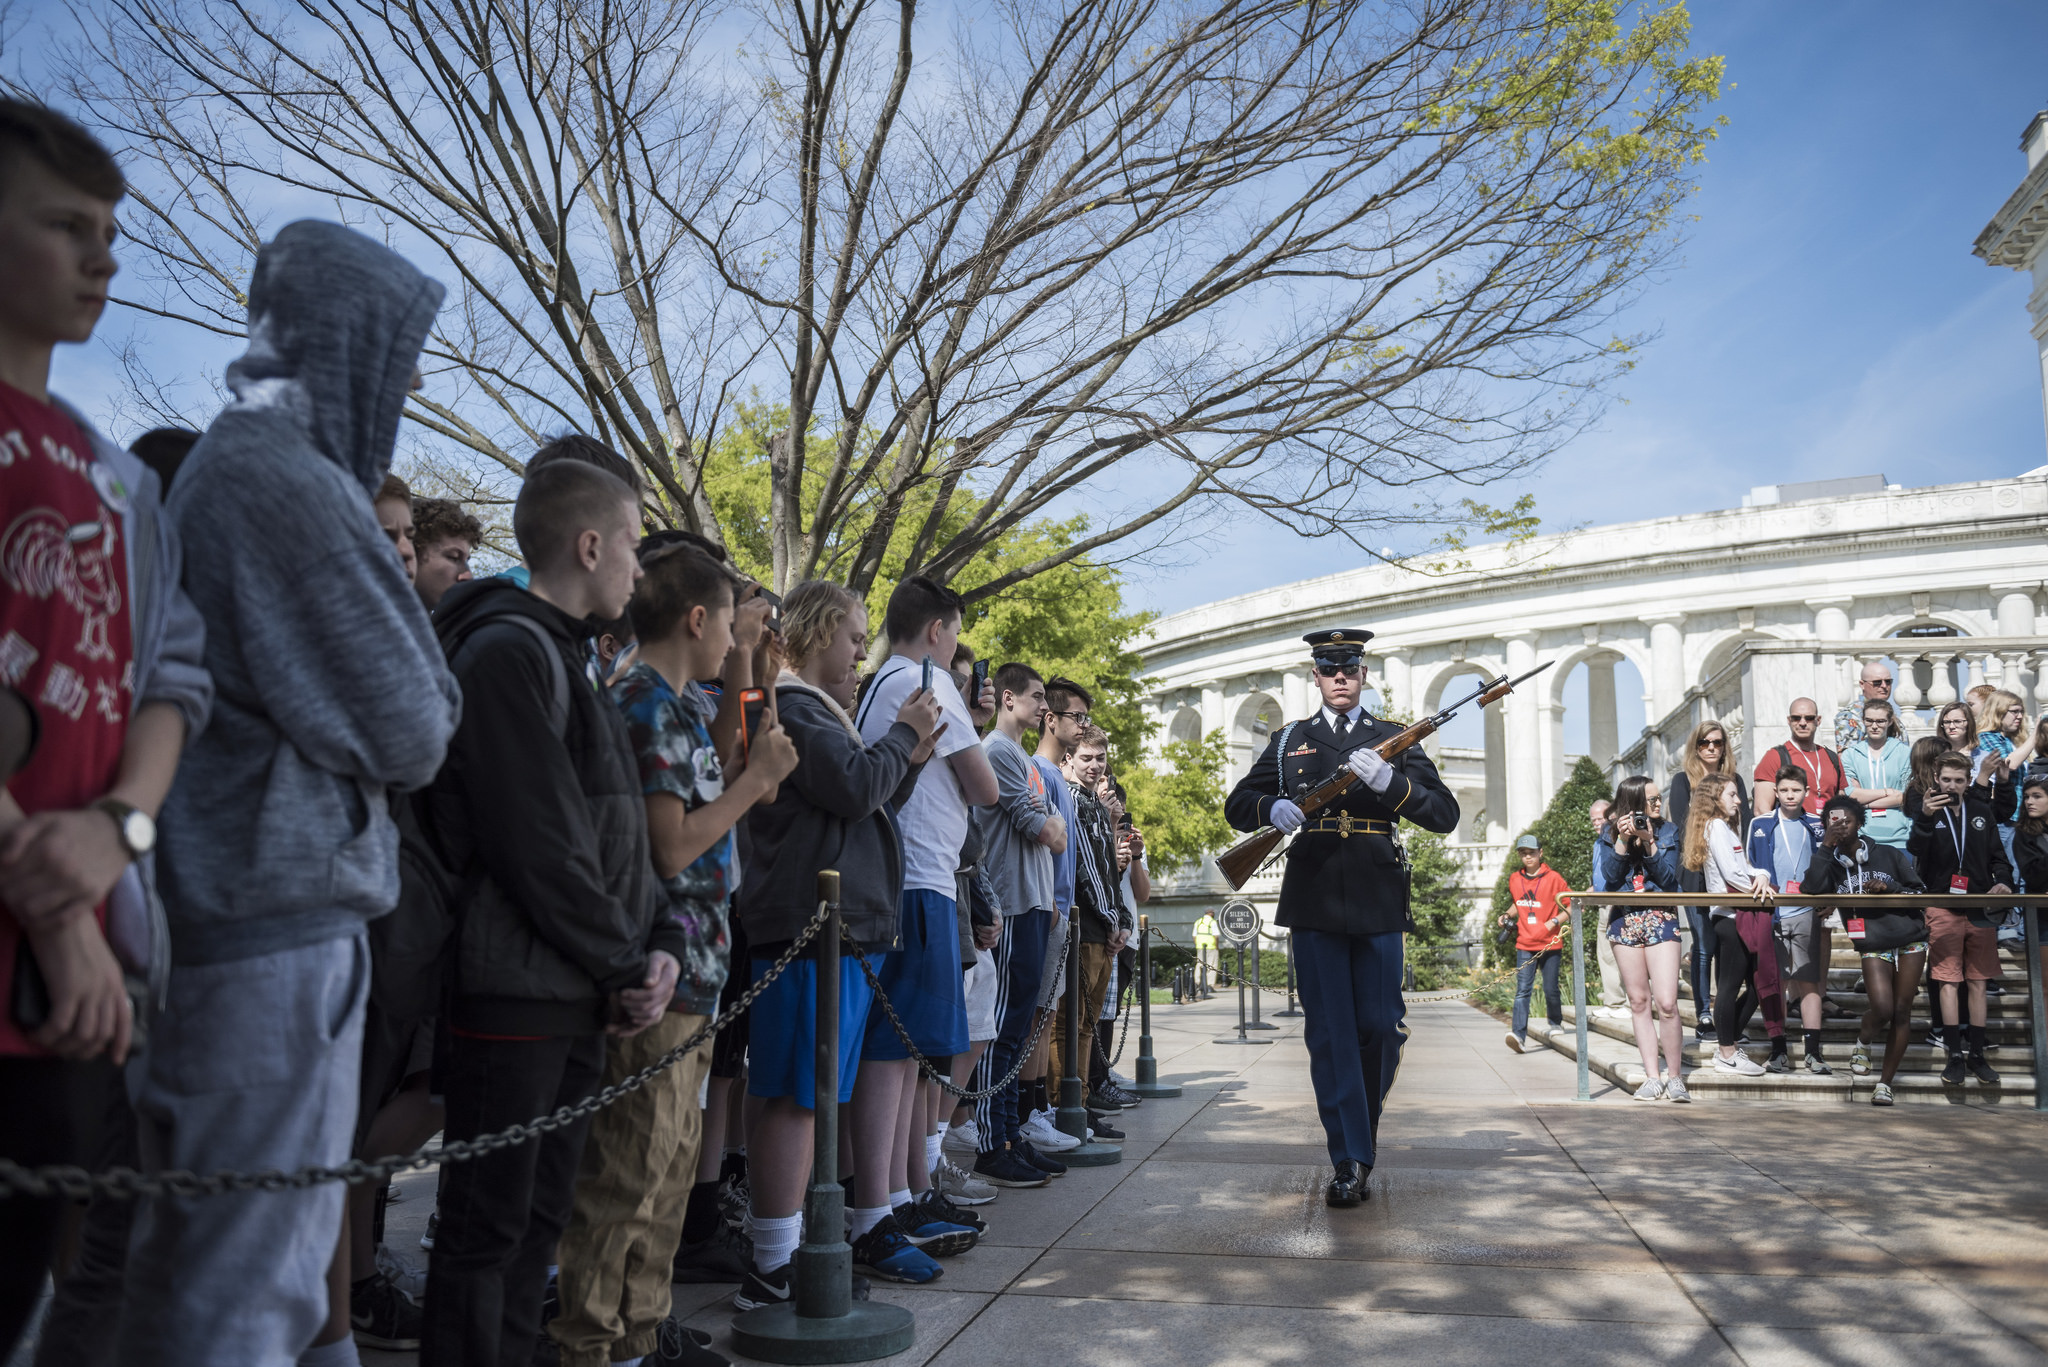 Visitors watch the changing of the guard at the Tomb of the Unknown Soldier